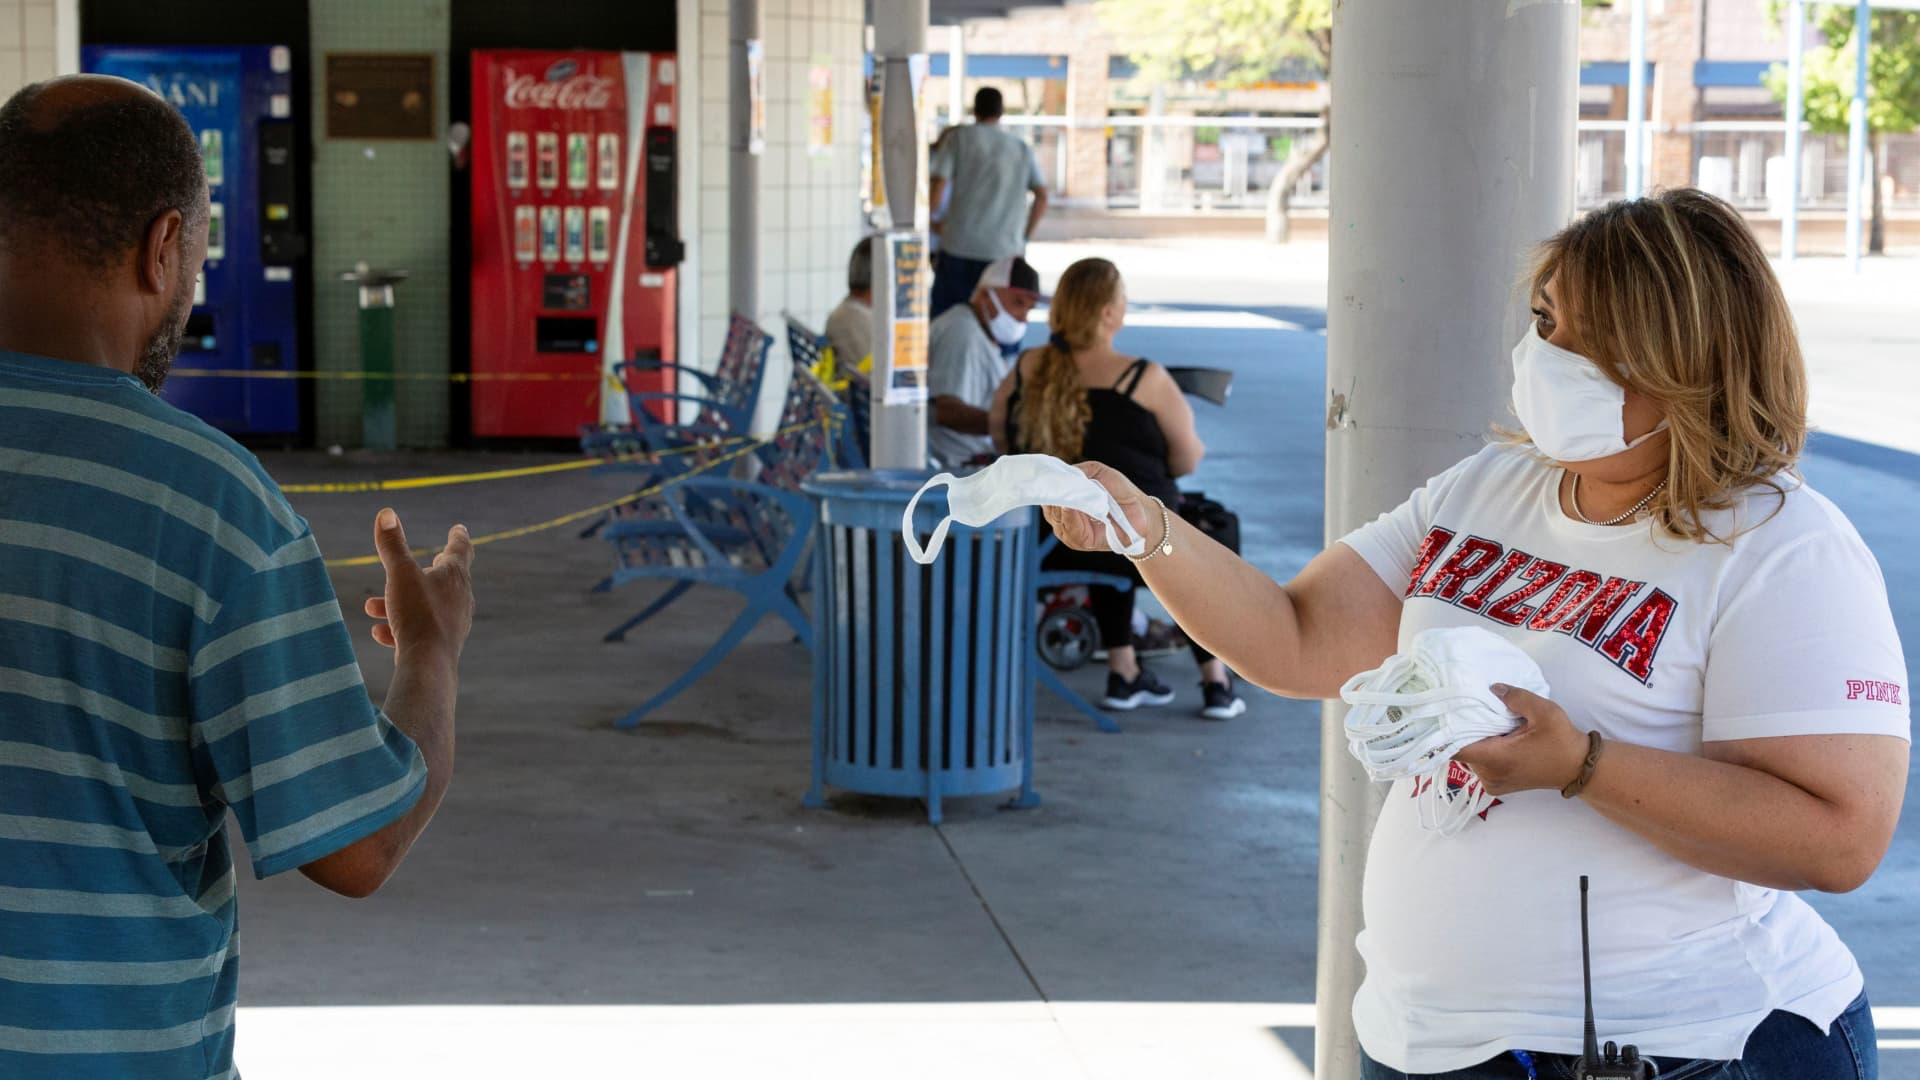 A Sun Tran employee offers free masks to passengers to prevent the spread of the coronavirus disease (COVID-19), at the downtown bus station in Tucson, Arizona, U.S., June 20, 2020.